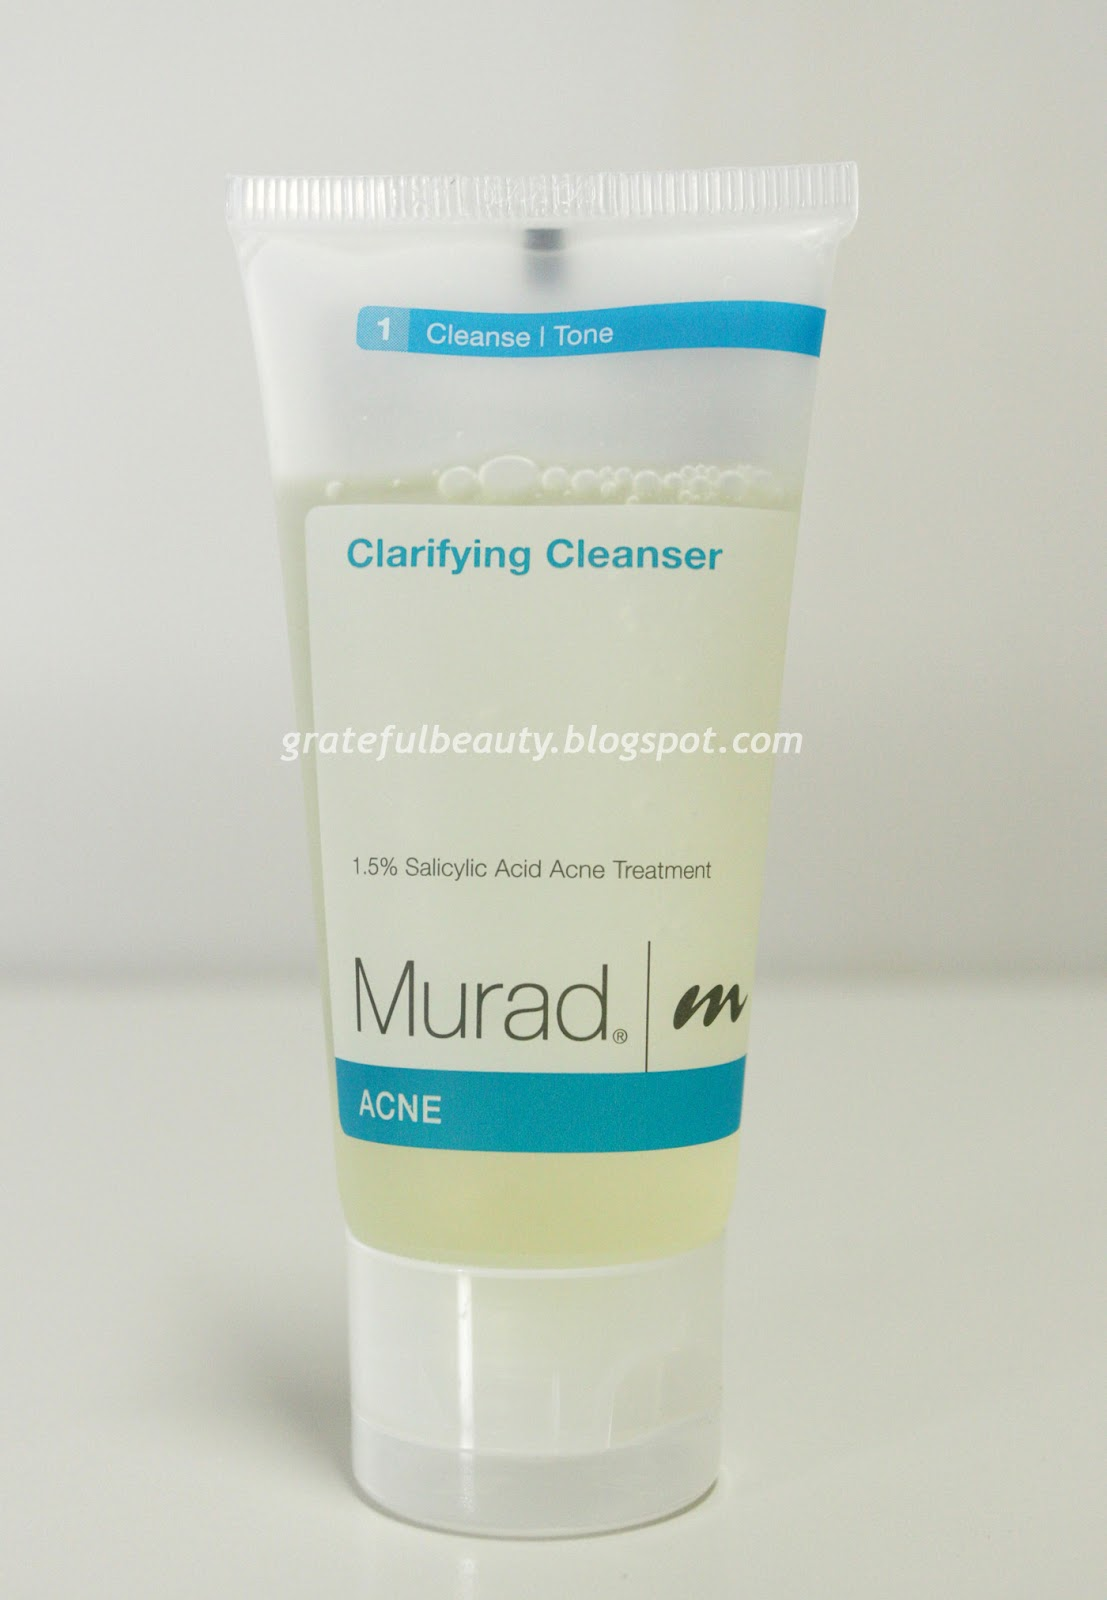 Murad Exfoliating Acne Treatment Gel Reviews